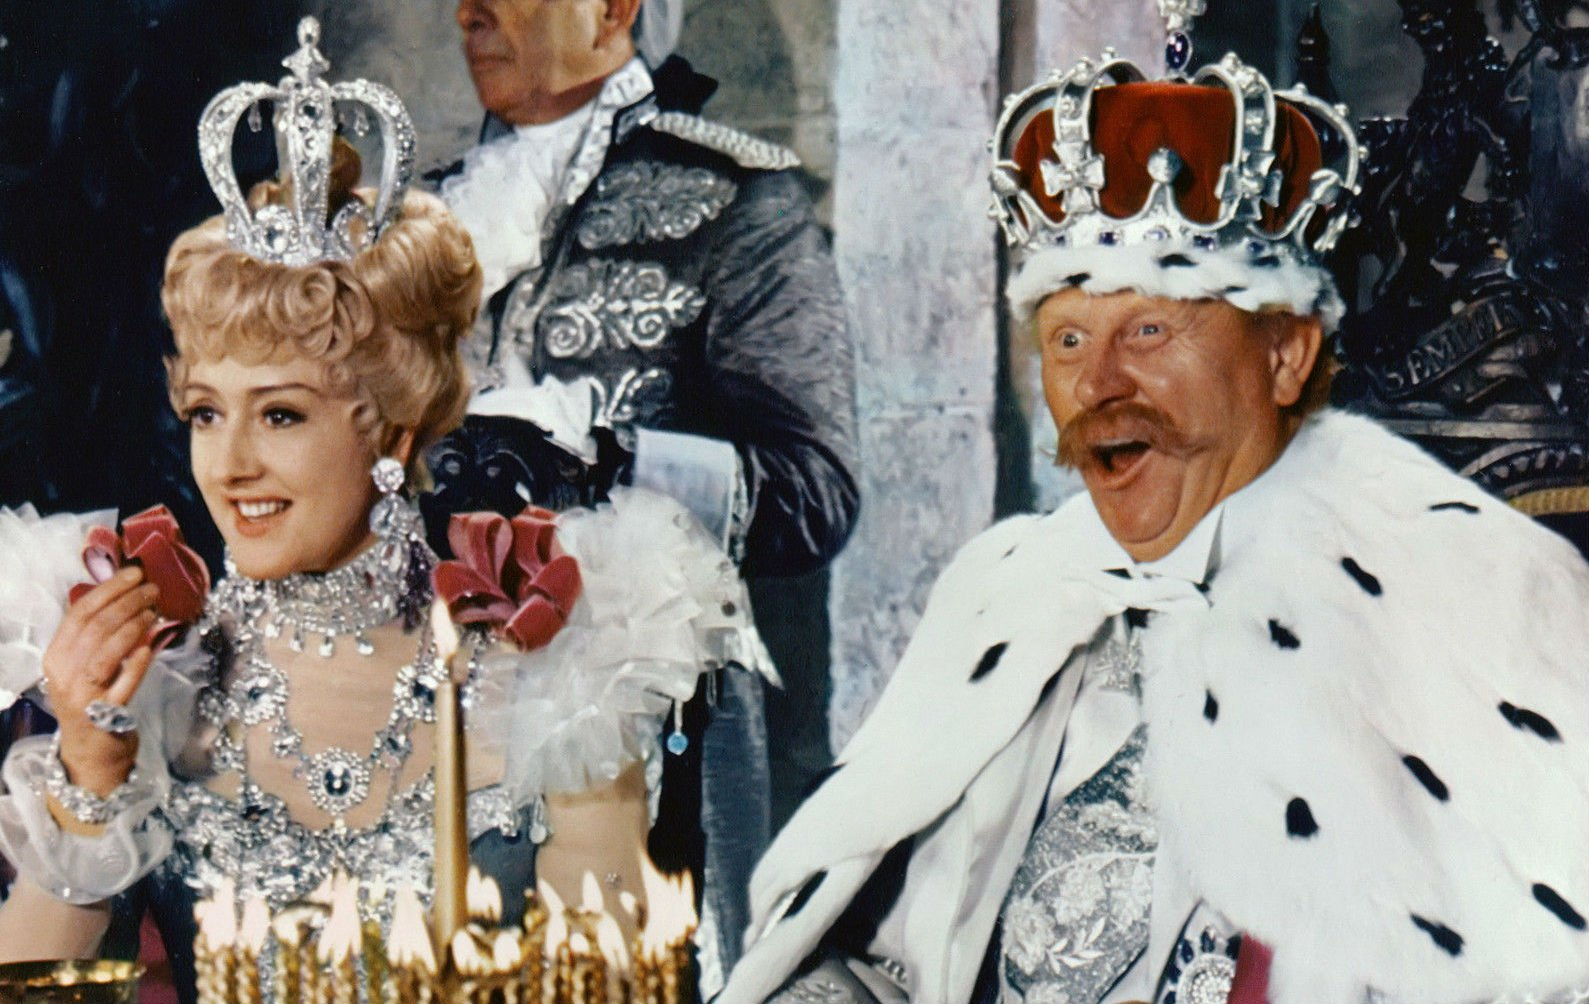 Anna Quayle as Baroness Bomburst in Chitty Chitty Bang Bang